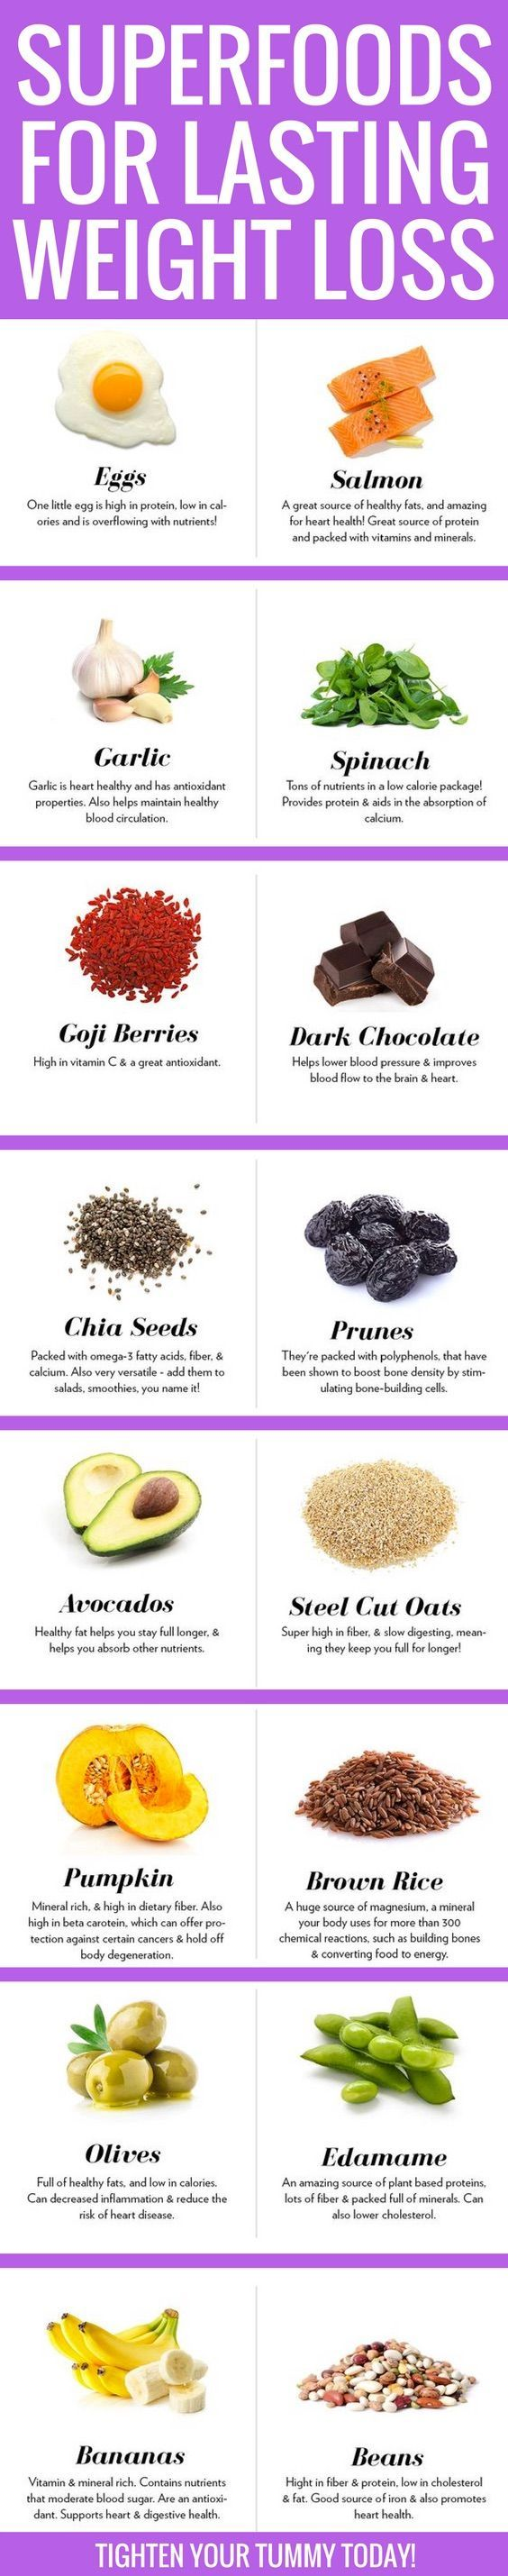 17 best foods to eat if you want to lose weight quick.